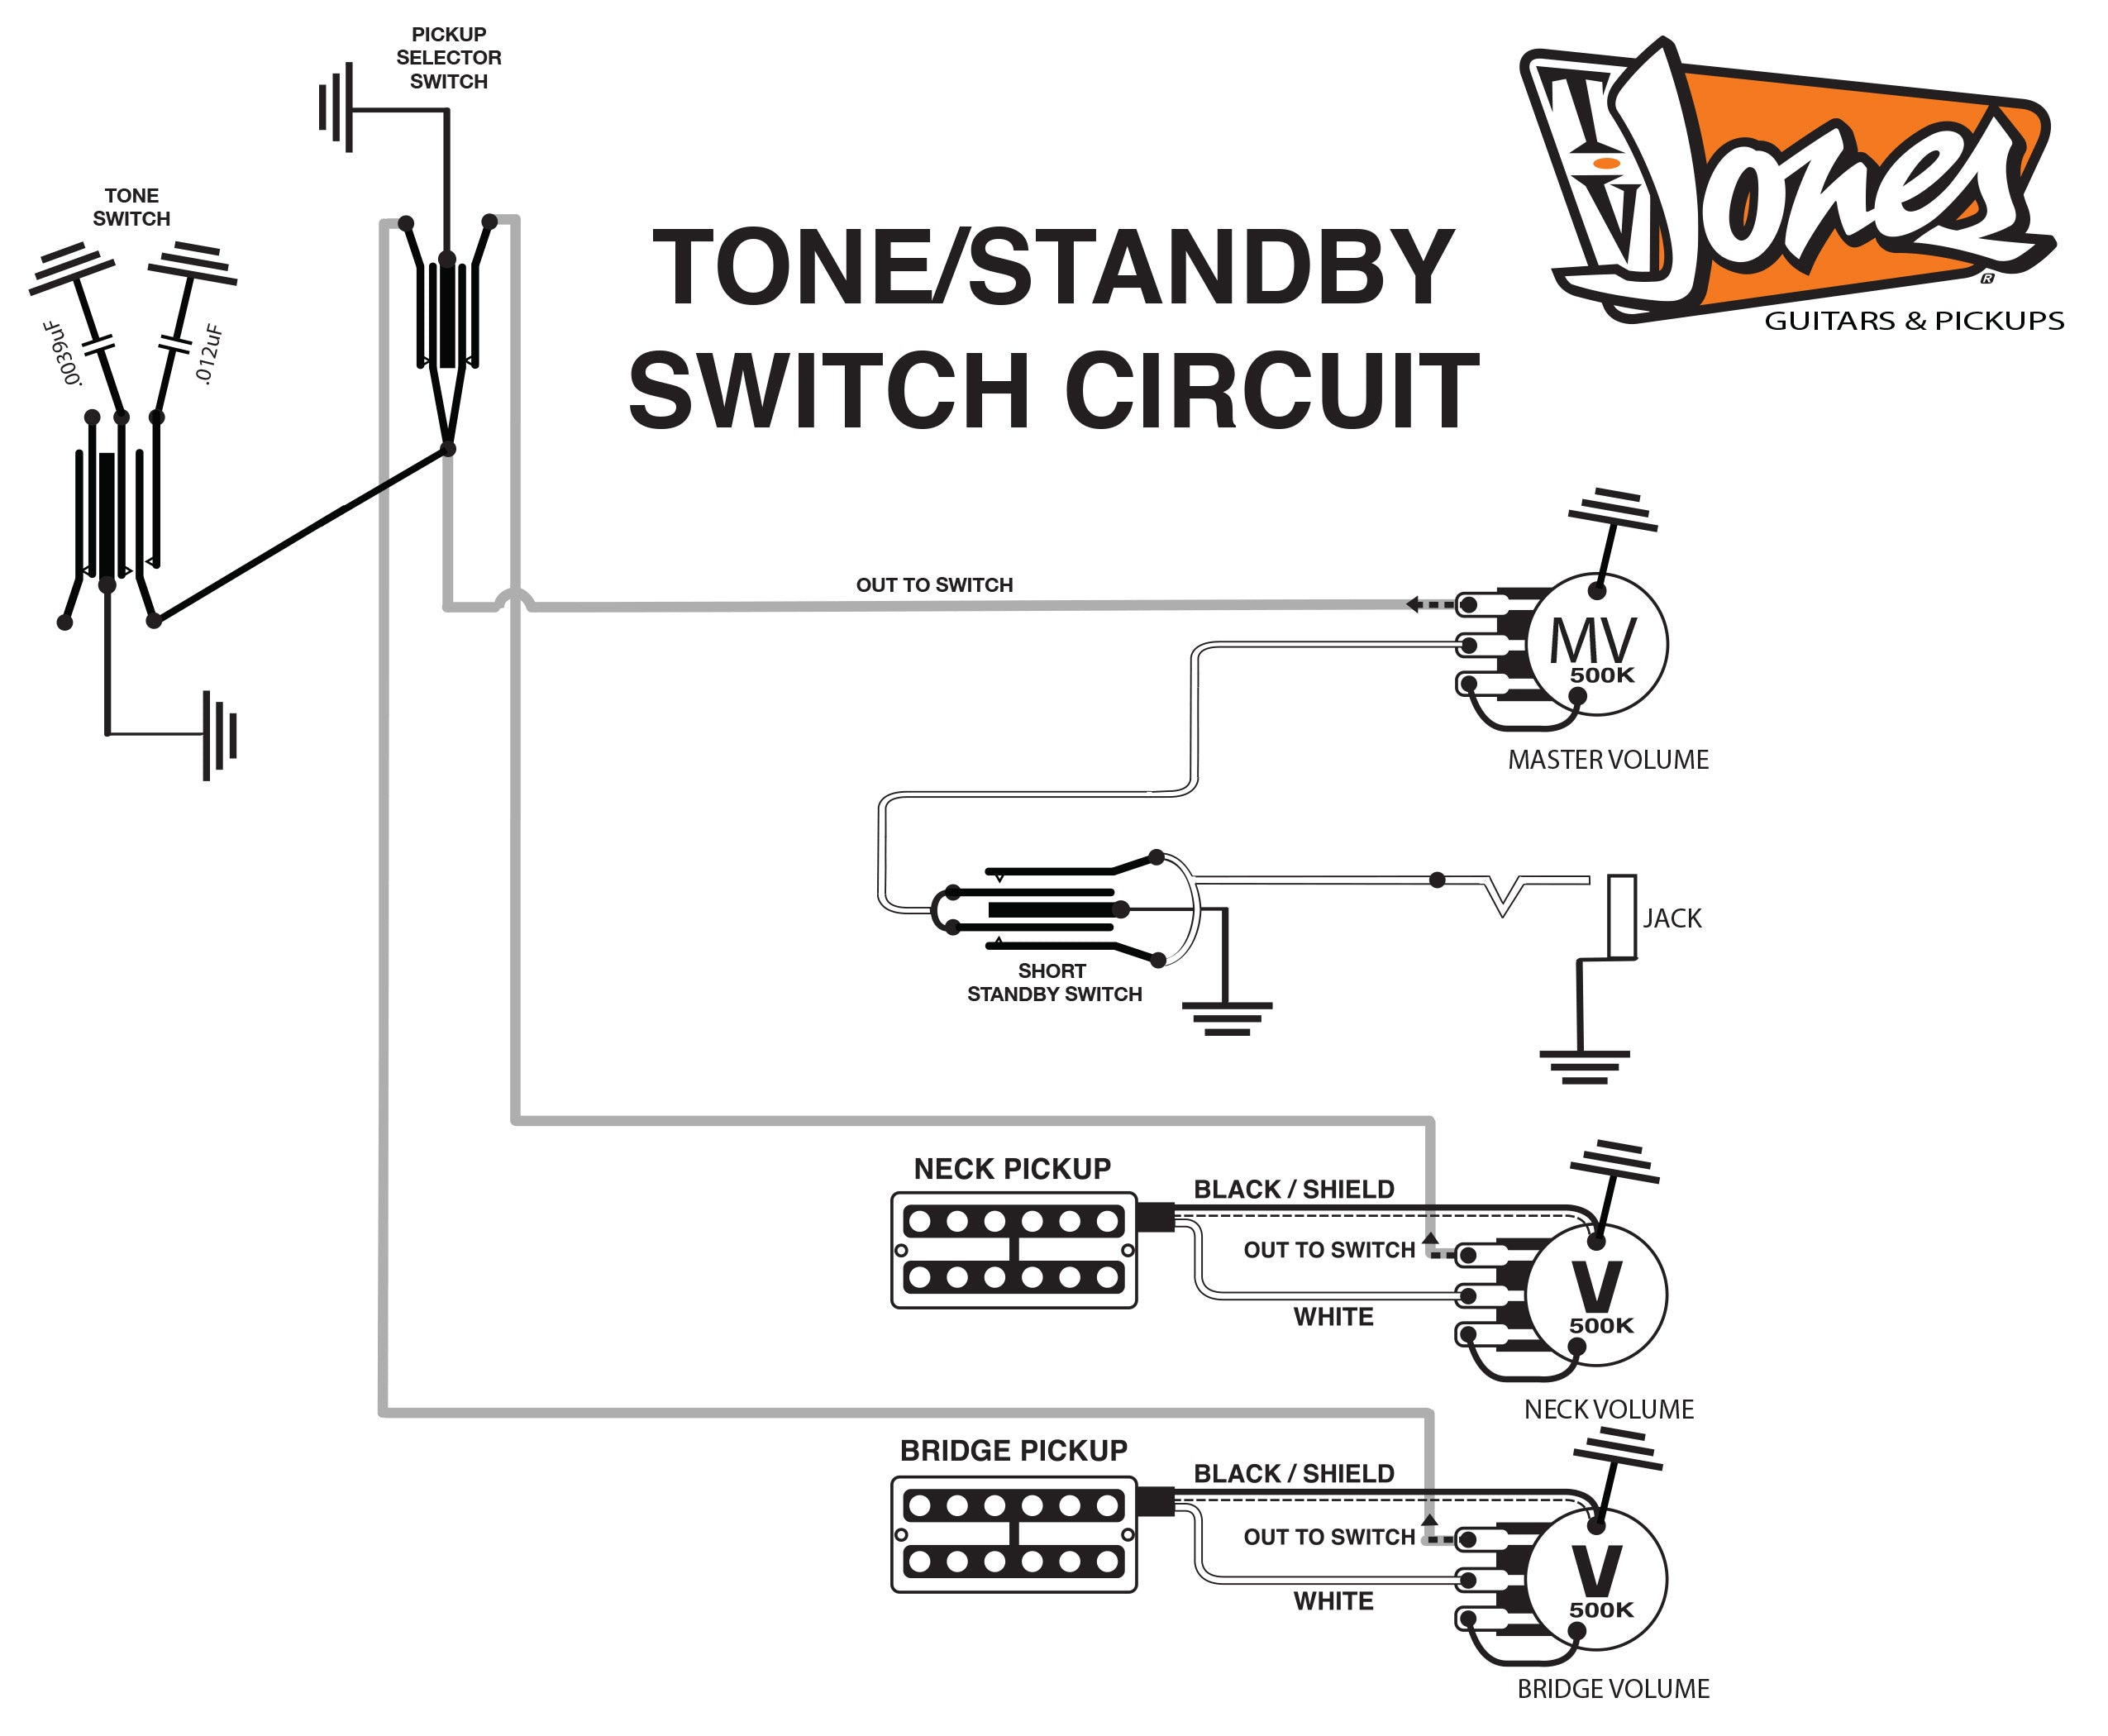 Gretsch Synchromatic Wiring Diagram | Wiring Diagram on dean ml wiring diagram, gator wiring diagram, johnson wiring diagram, silvertone wiring diagram, fishman wiring diagram, korg wiring diagram, gibson wiring diagram, stratocaster wiring diagram, taylor wiring diagram, musicman wiring diagram, mosrite wiring diagram, jackson wiring diagram, hagstrom wiring diagram, duncan performer wiring diagram, manufacturing wiring diagram, kurzweil wiring diagram, hamer wiring diagram, harmony wiring diagram, michael kelly wiring diagram, dimarzio wiring diagram,